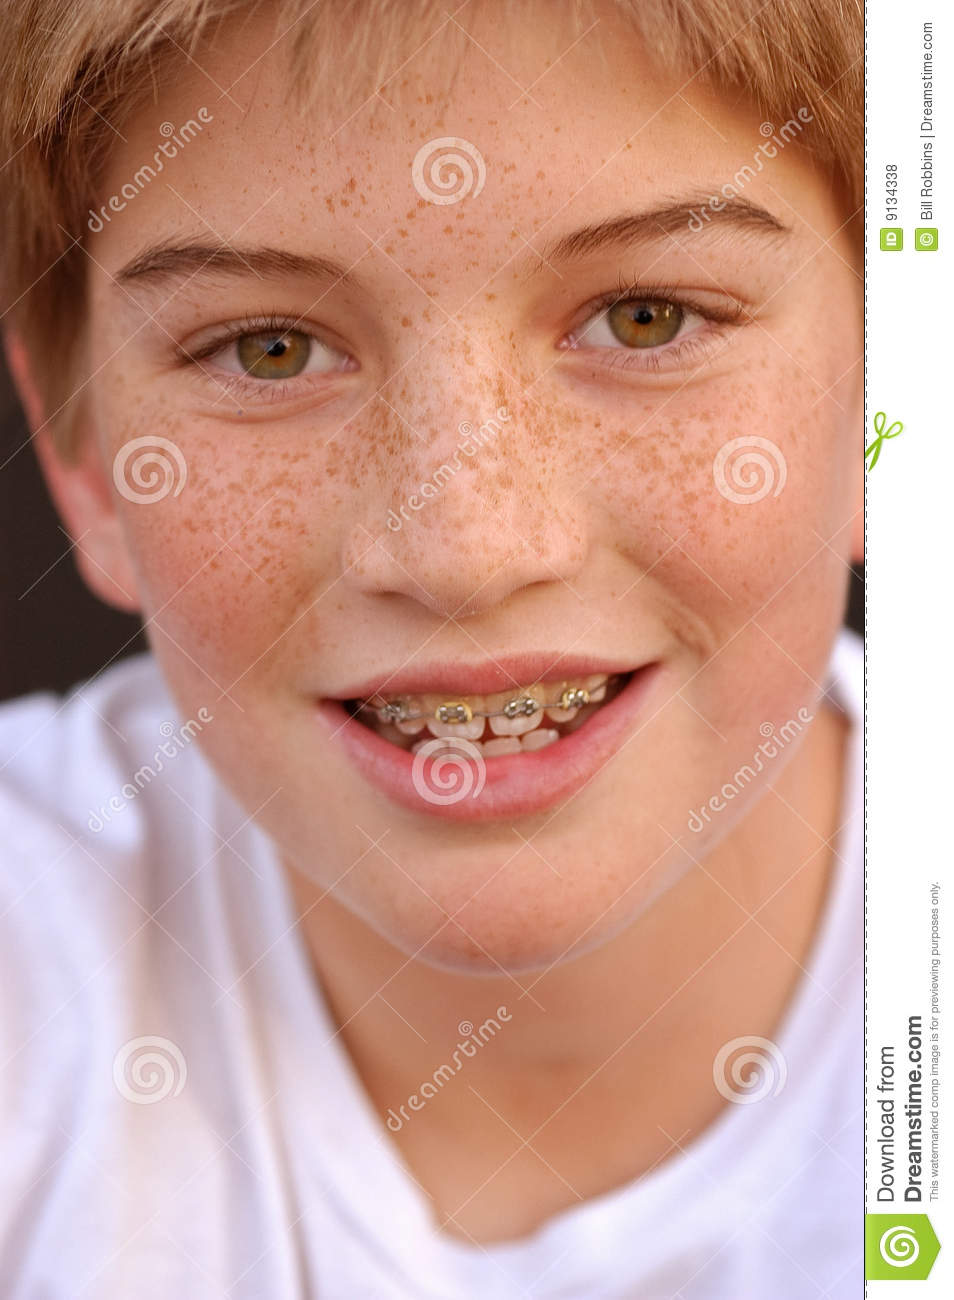 Braces With Smile Stock Photo. Image Of Dentist, Teeth